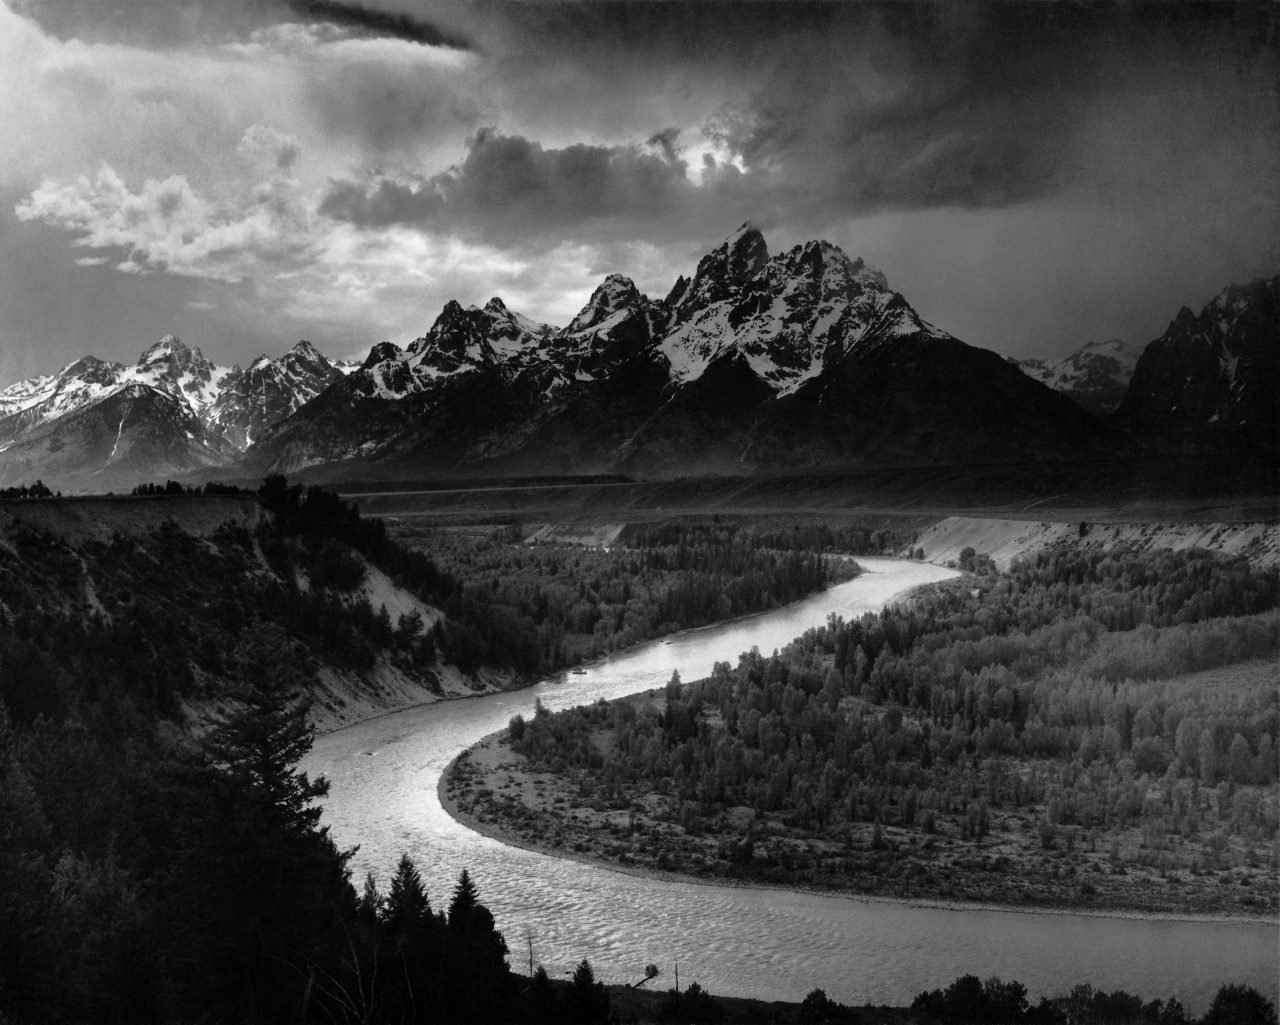 Ansel Adams, The Tetons and_the Snake River